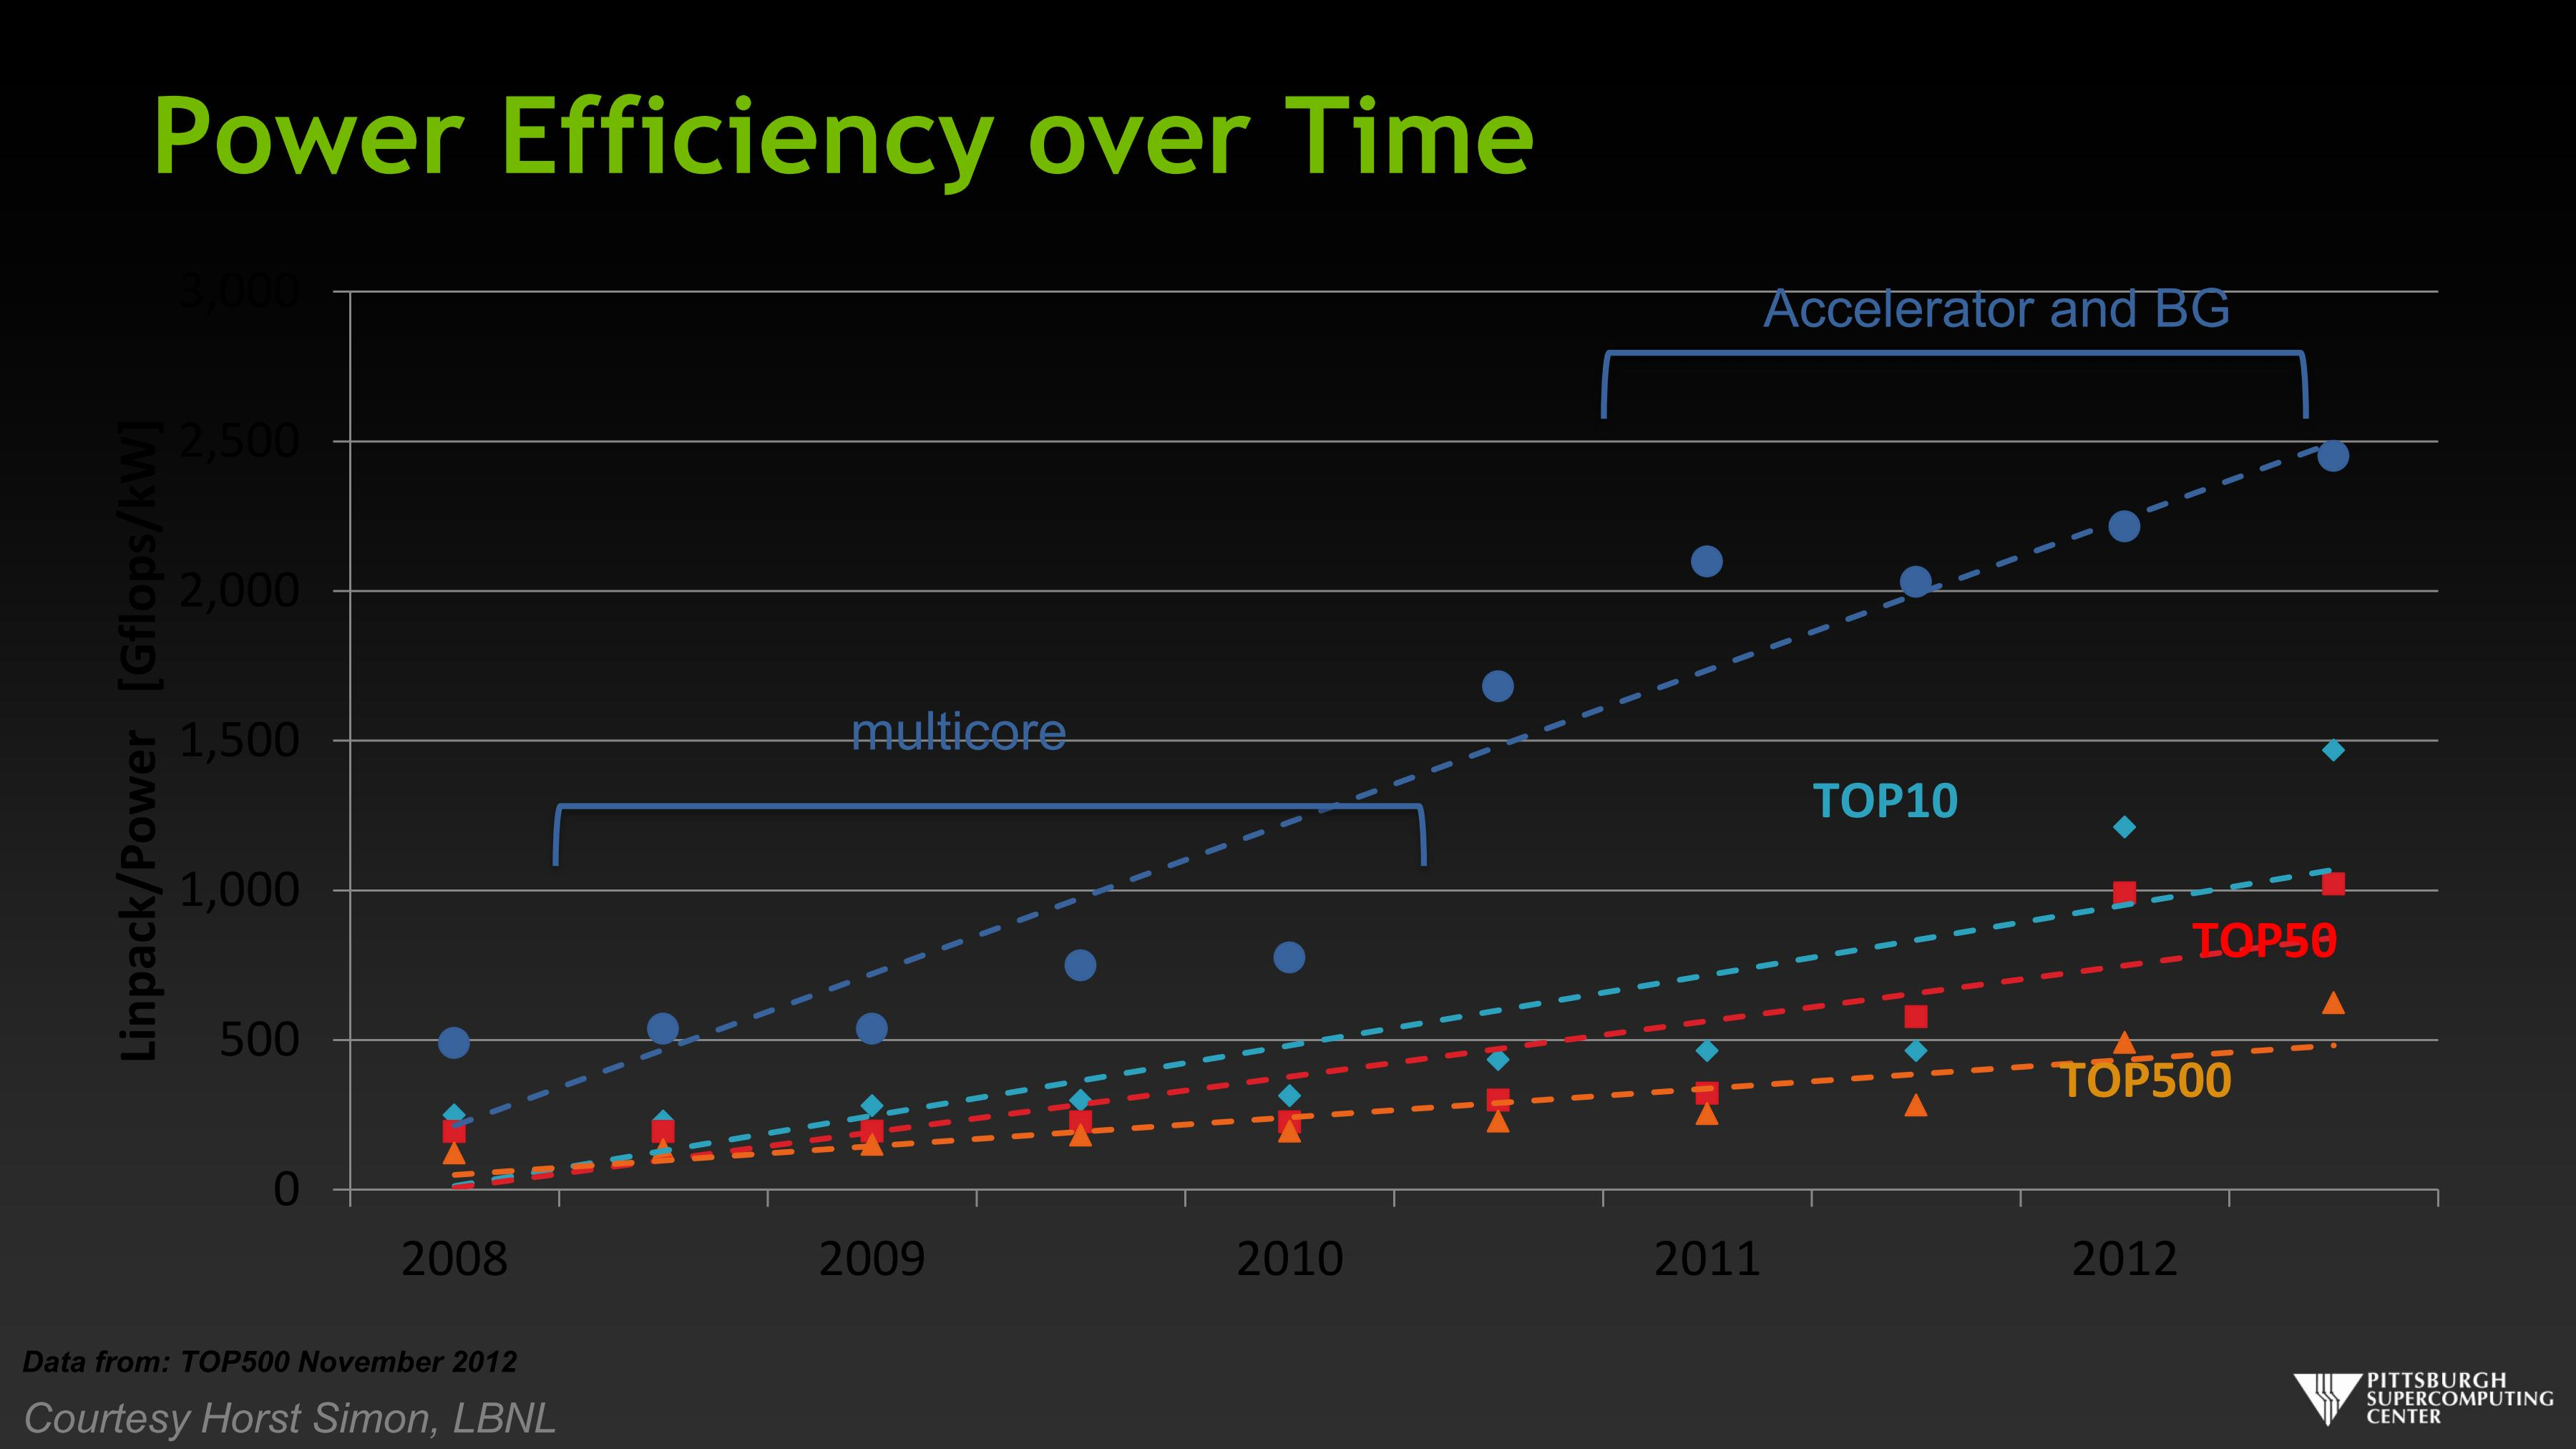 Power Efficiency over Time